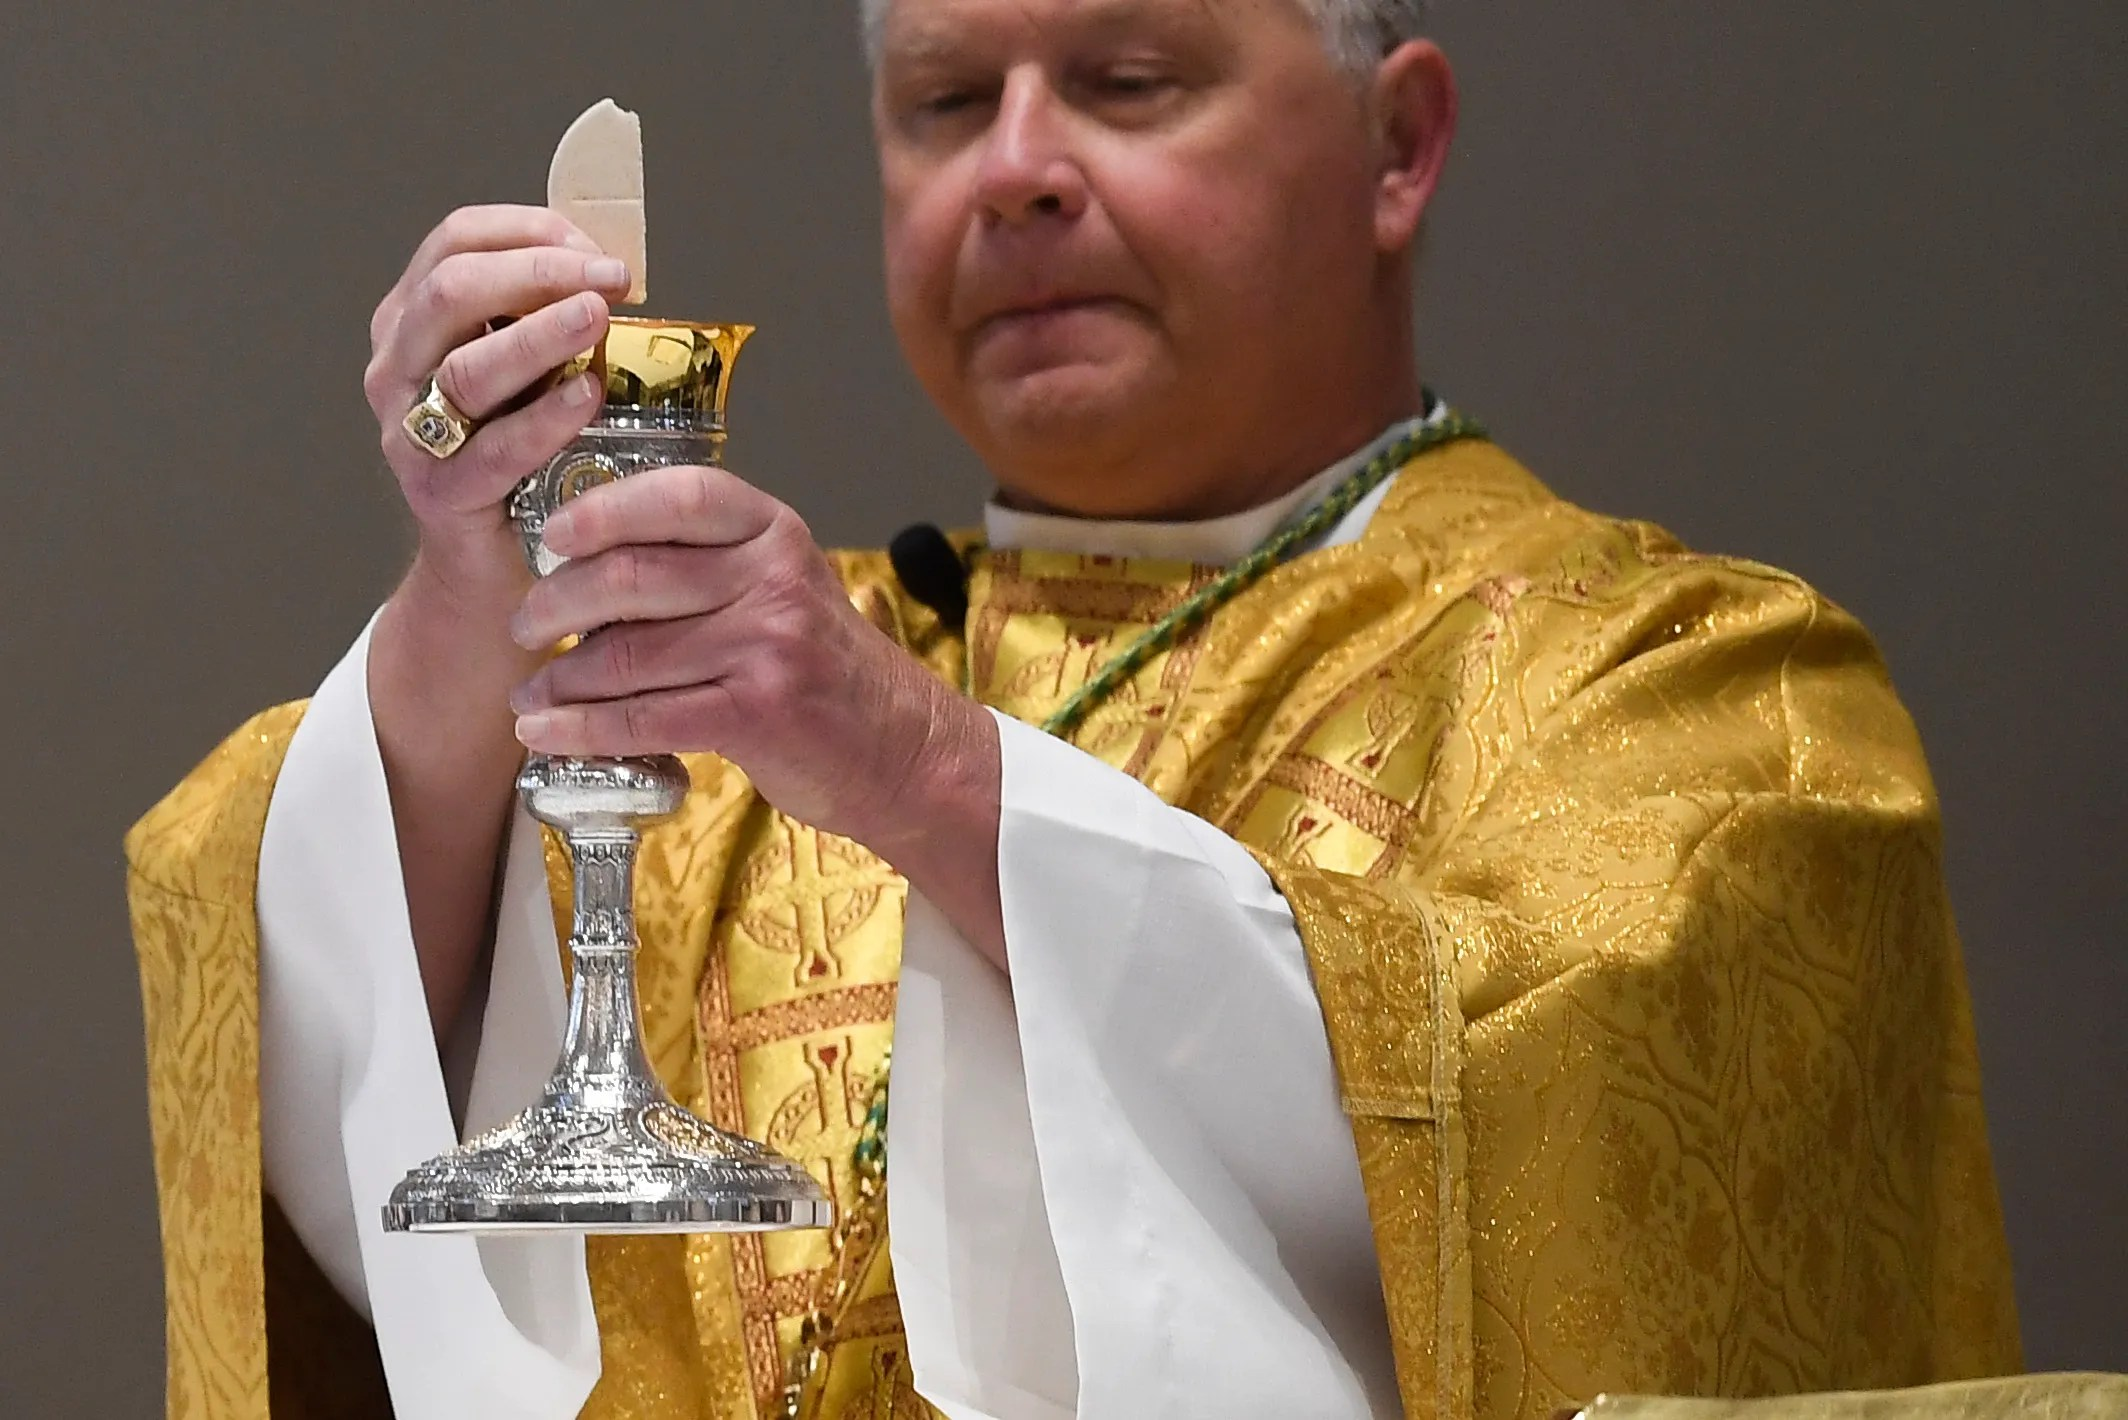 Knoxville Catholic Bishop Richard Stika holds Easter mass at the Cathedral of the Most Sacred Heart of Jesus in Knoxville, Tennessee, on April 12, 2020. Pews were empty due to coronavirus restrictions. A live stream of the service was offered on the church's website.